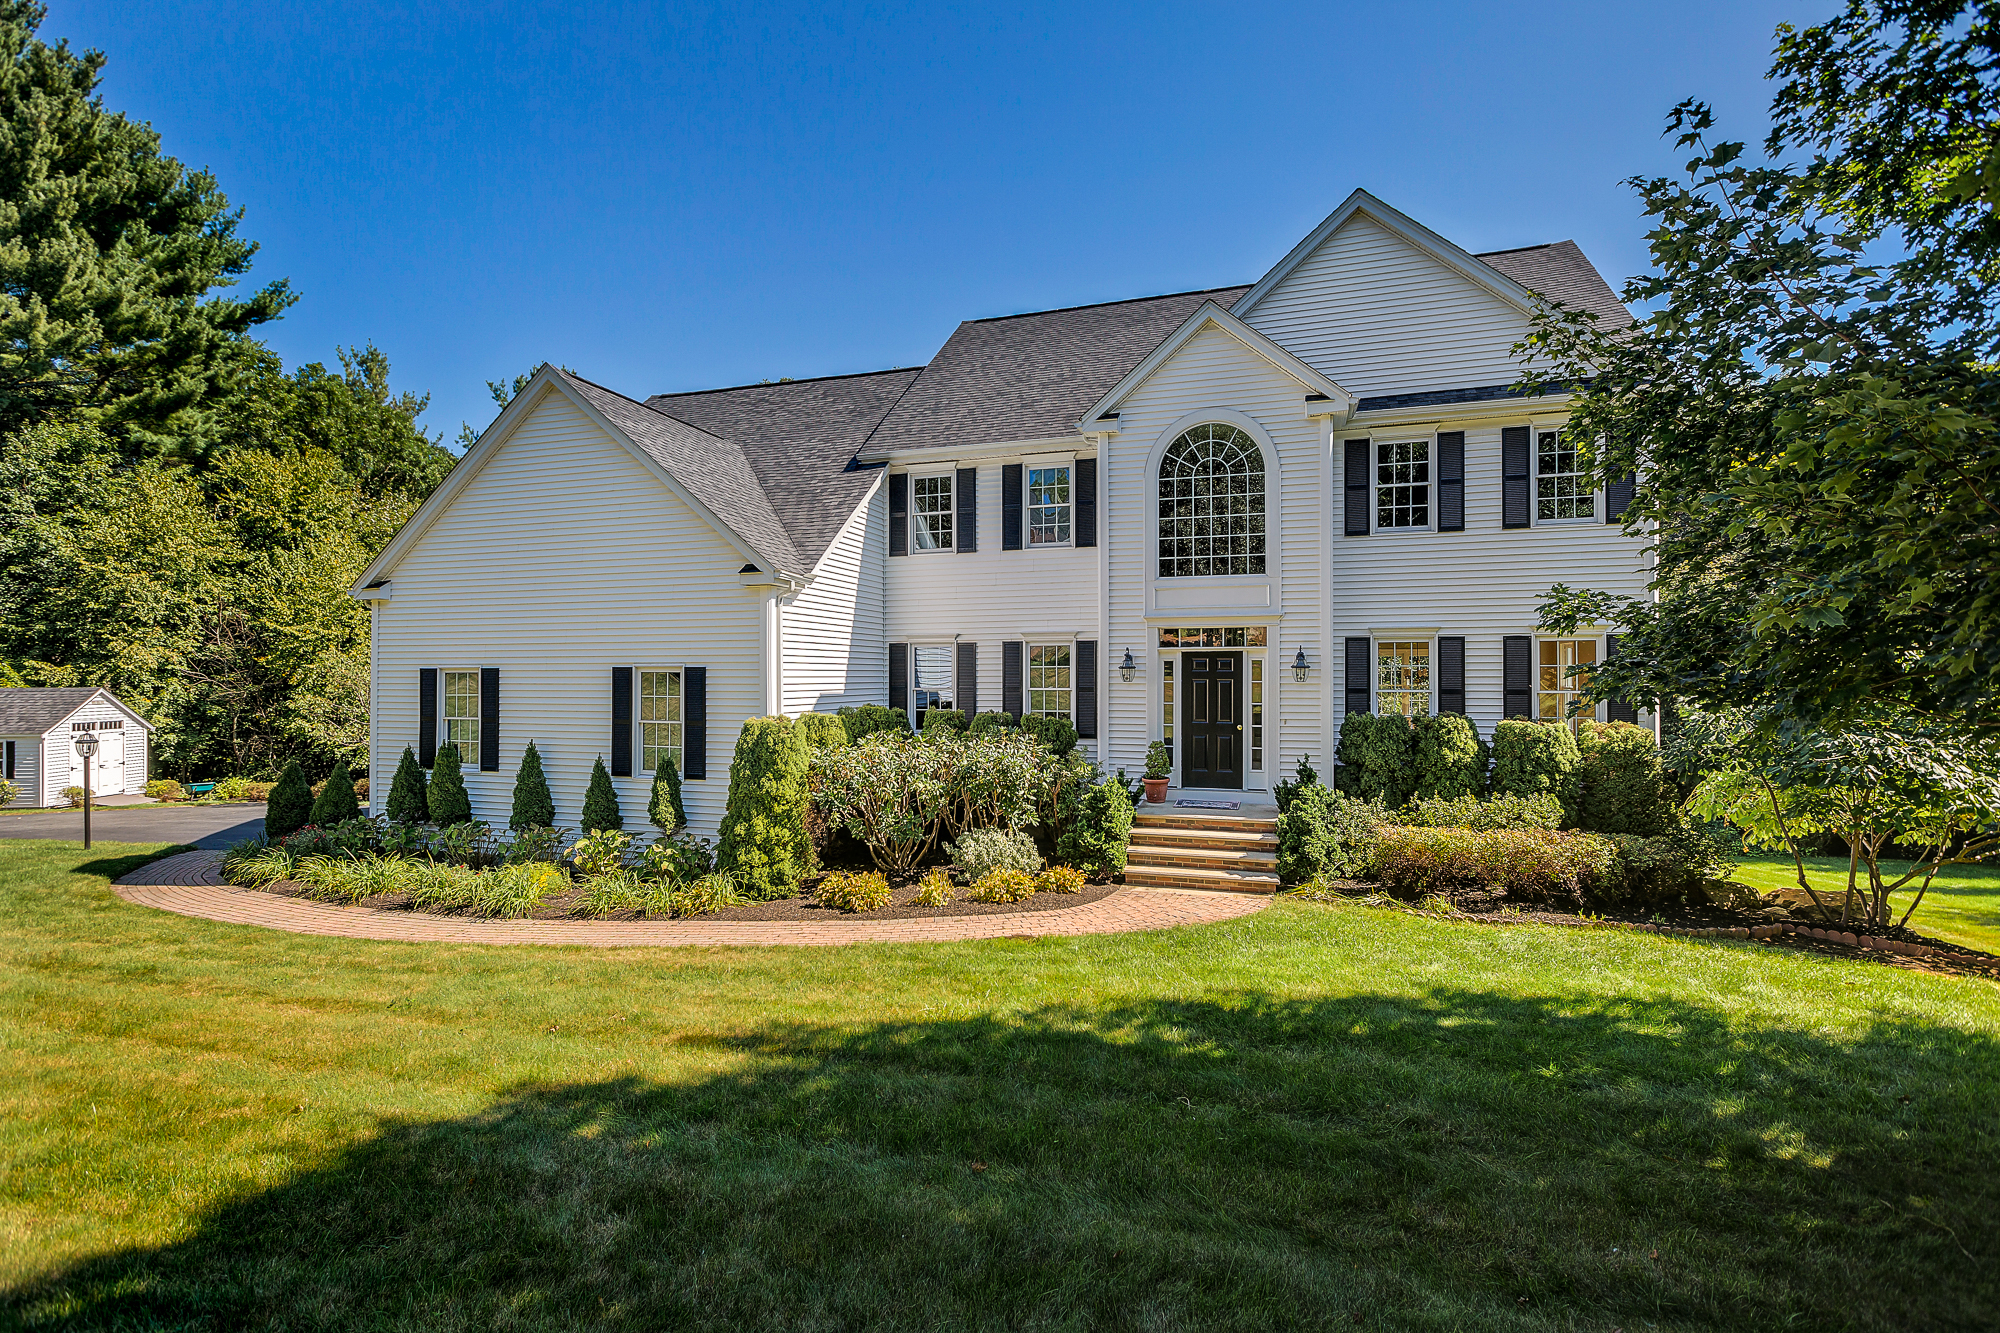 Property For Sale at Upgraded Colonial in Scenic Neighborhood